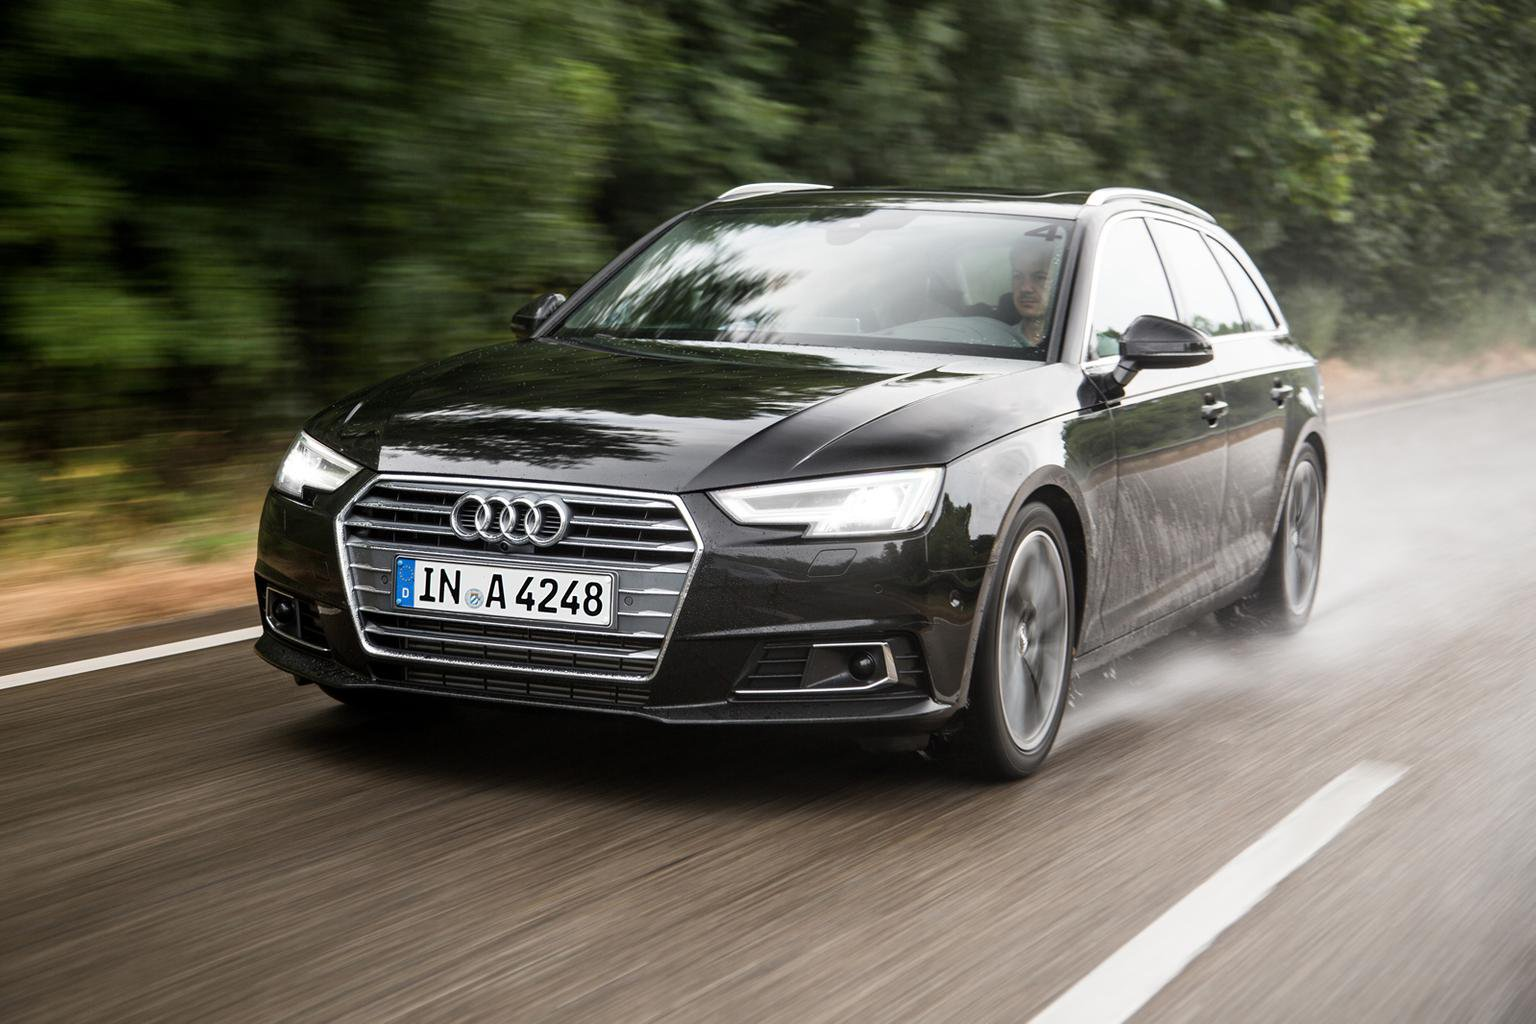 2015 Audi A4 Avant 2.0 TFSI 190 Ultra review